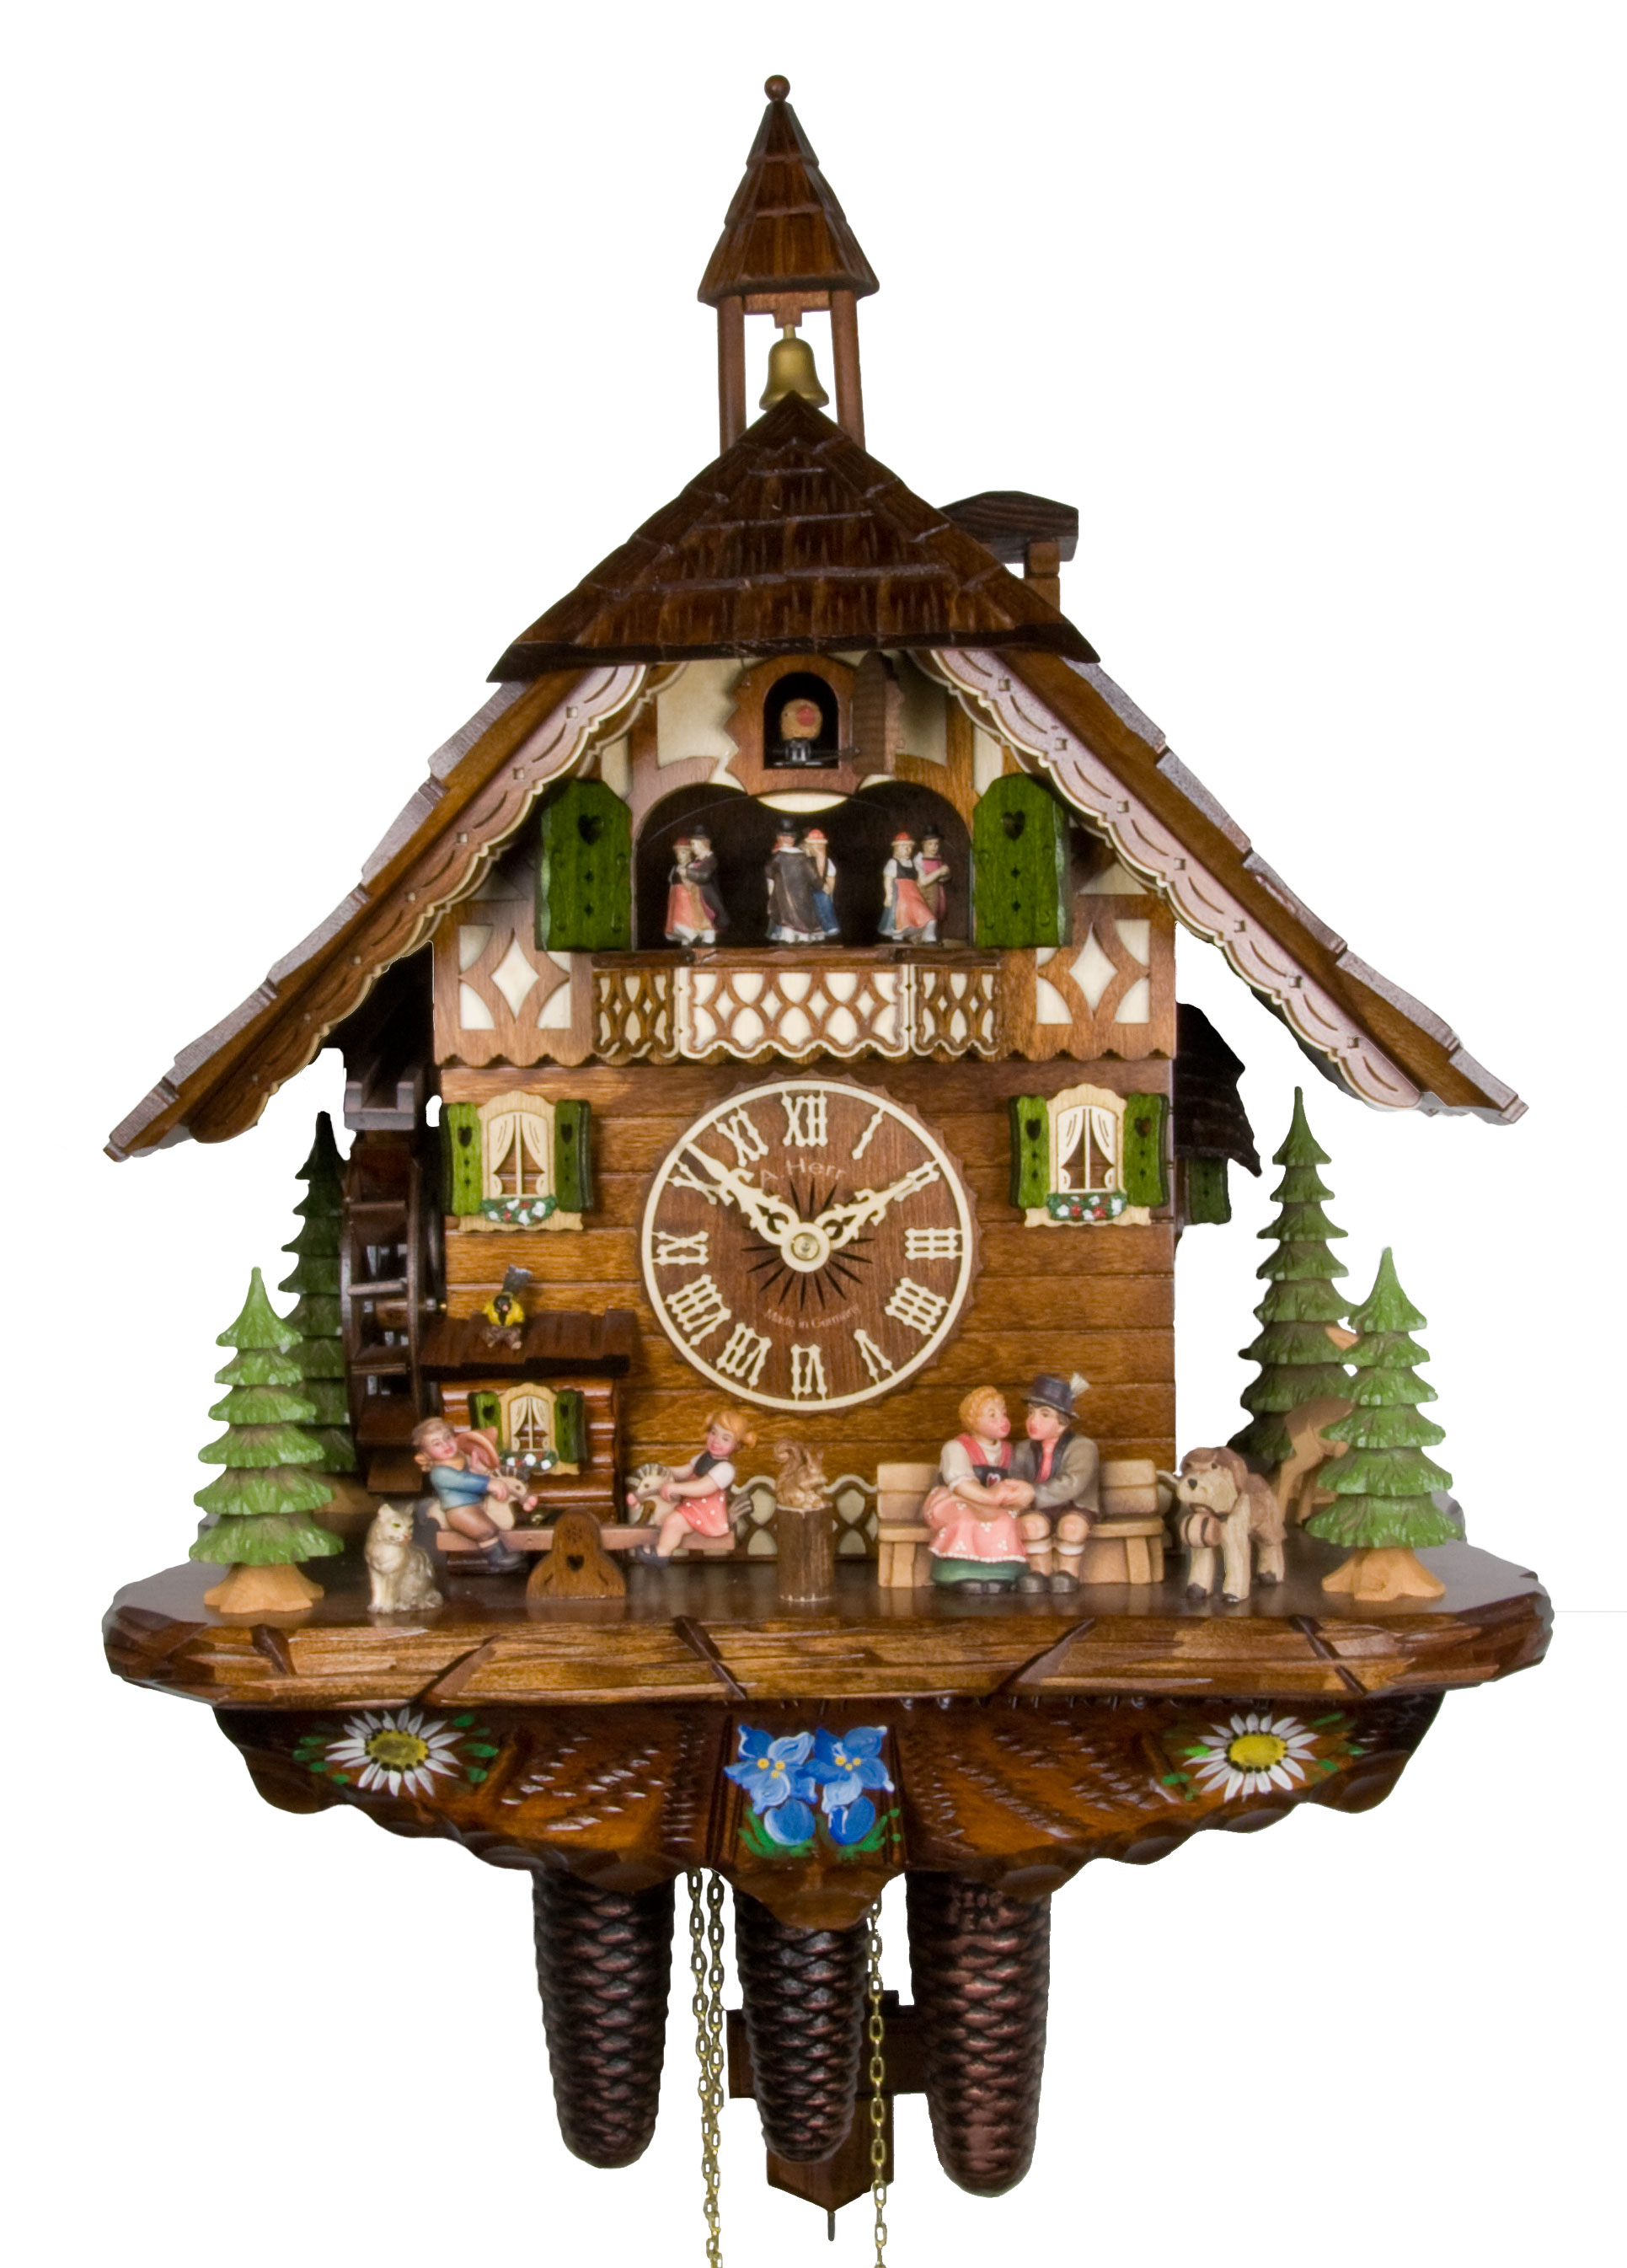 Adolf herr cuckoo clock happy family ah 801 1 8tmt new ebay - Colorful cuckoo clock ...